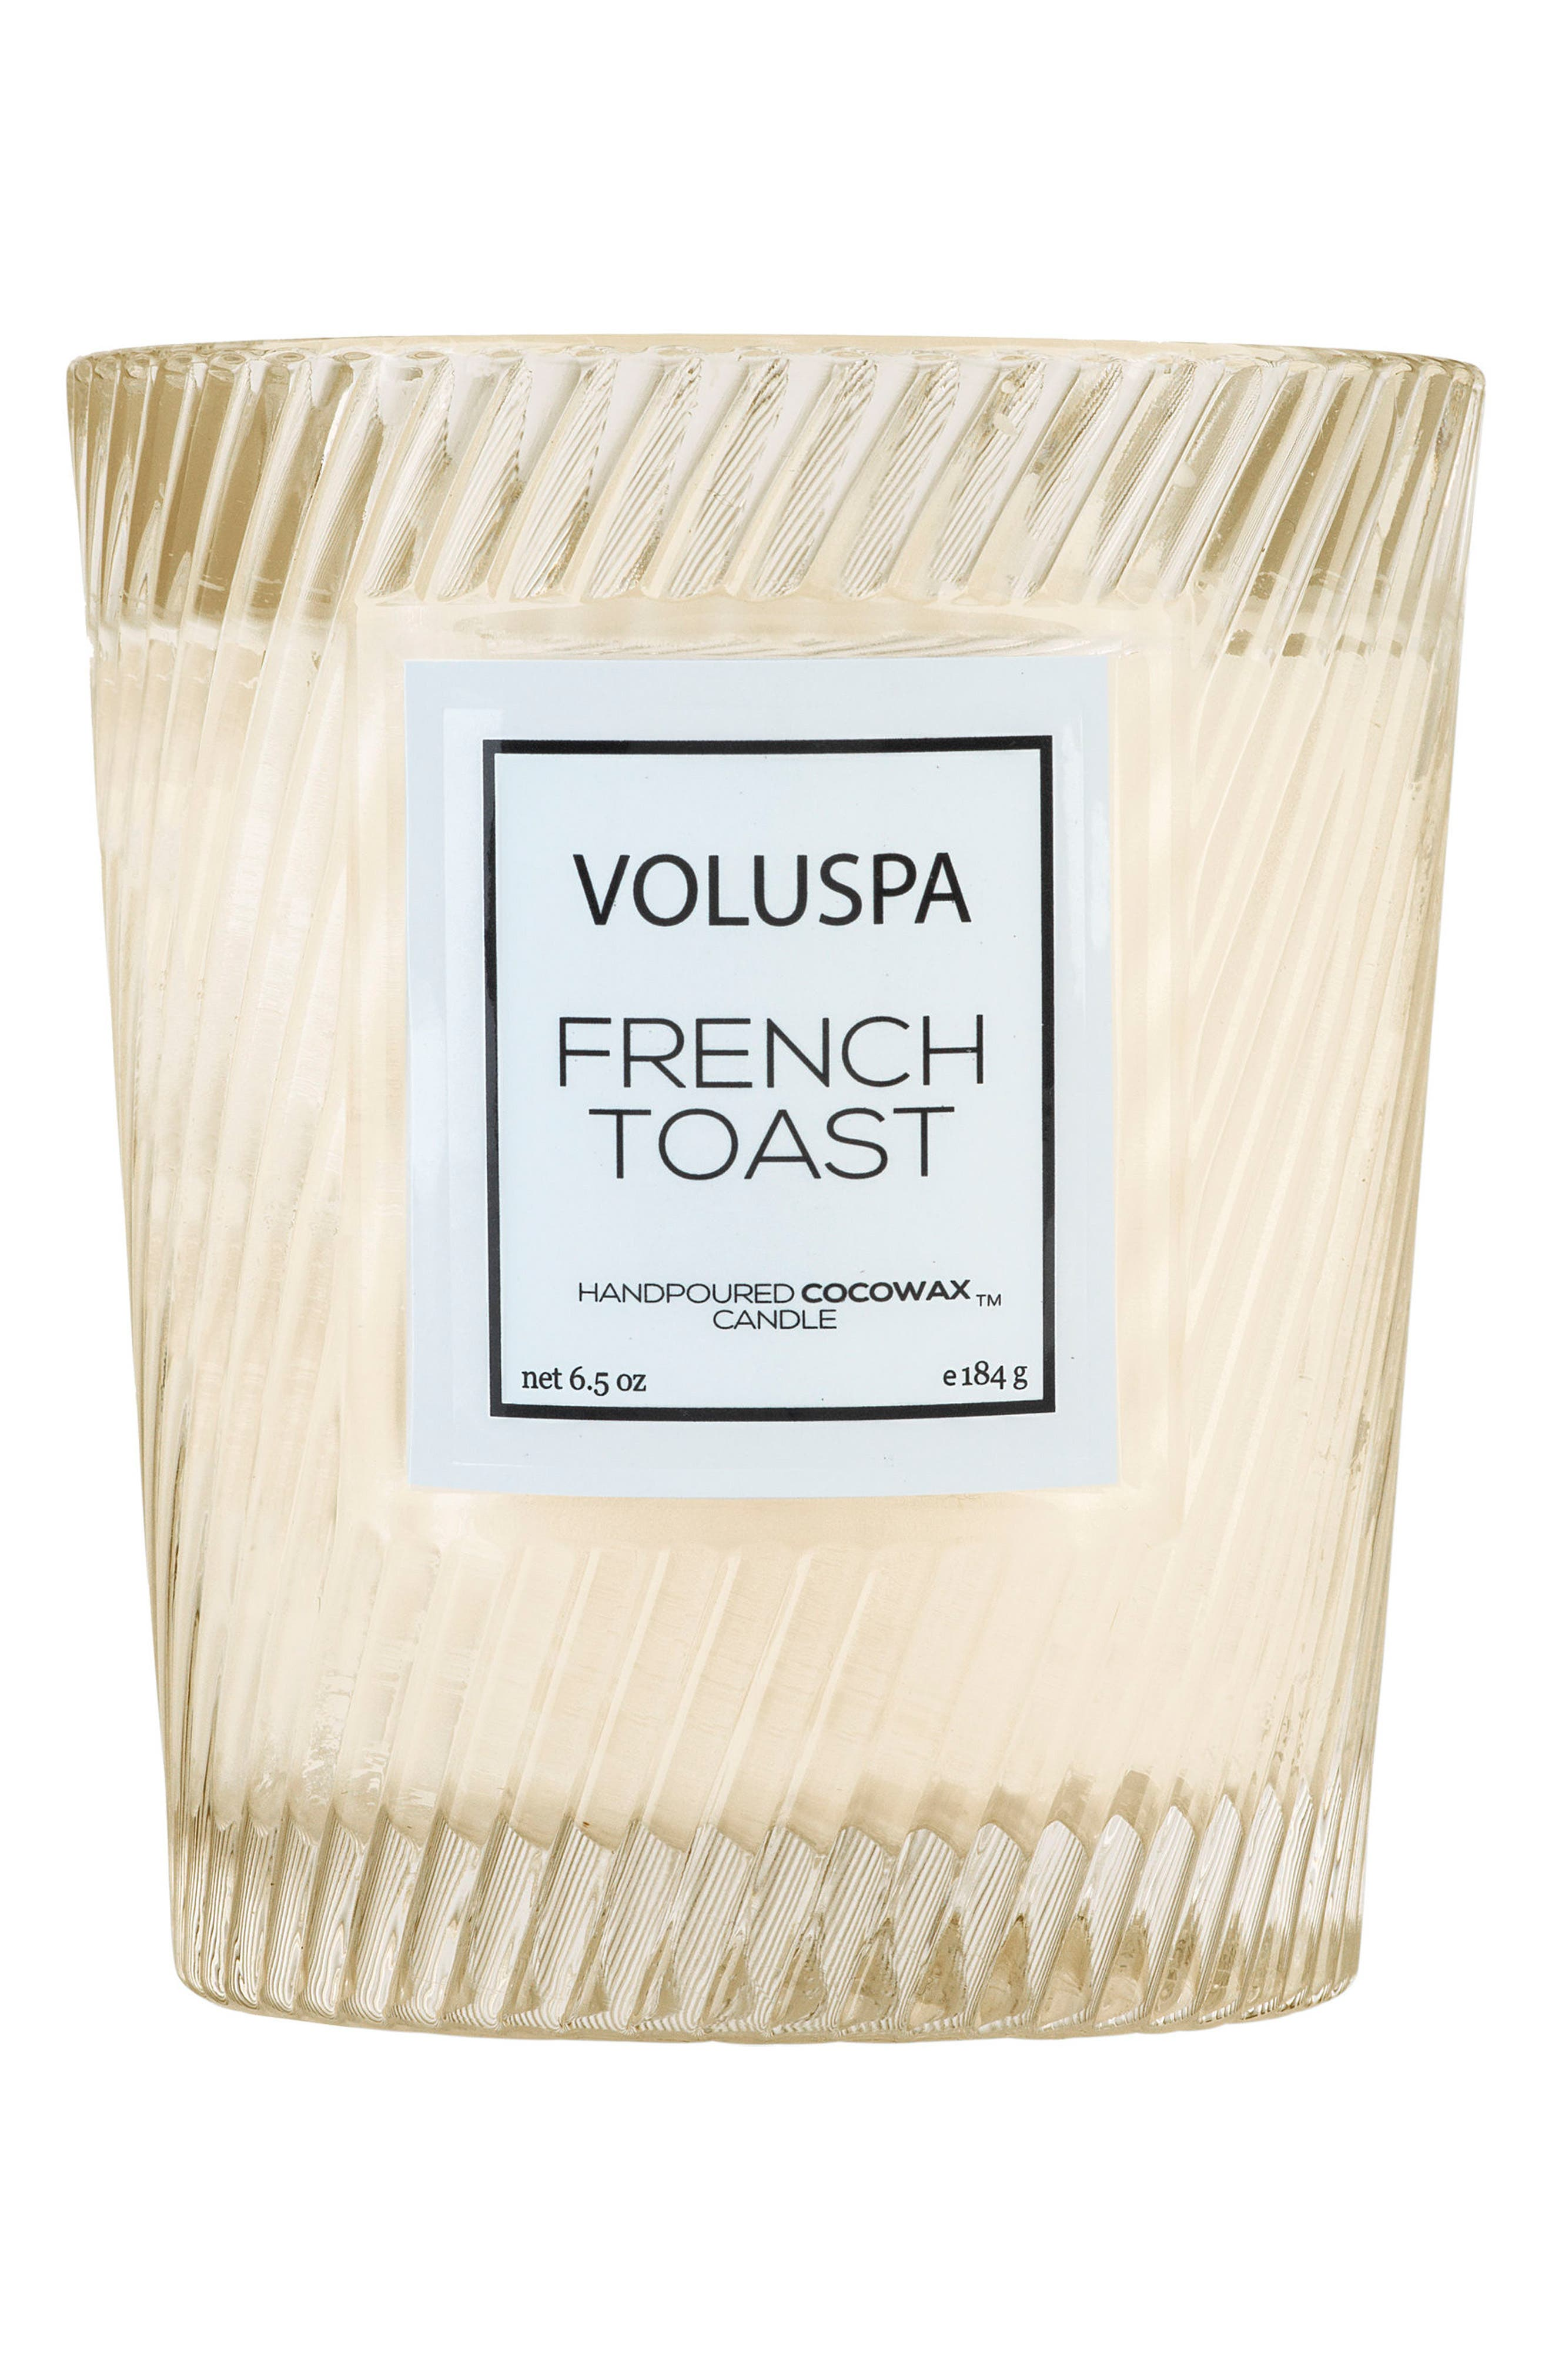 Voluspa Macaron Classic Textured Glass Candle